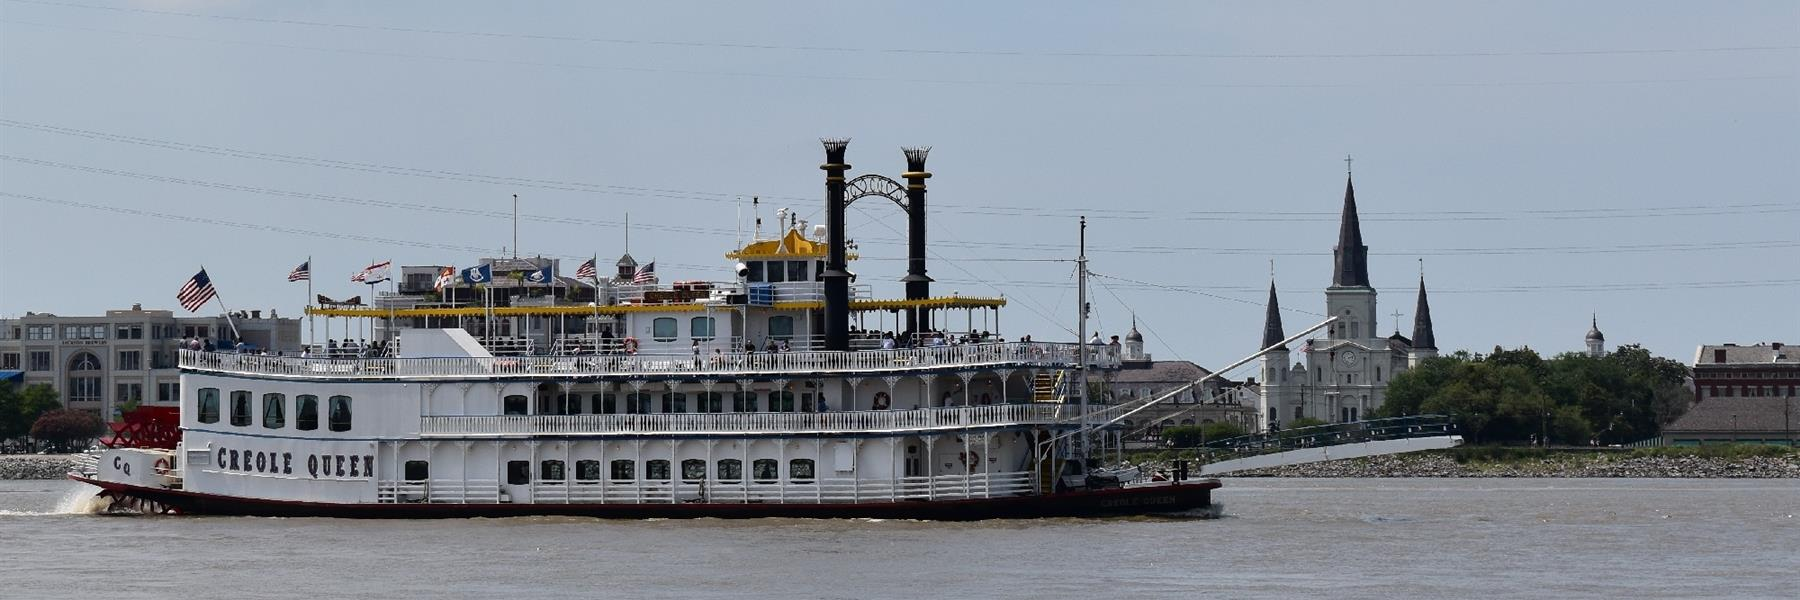 Paddlewheeler Creole Queen in New Orleans, Louisiana